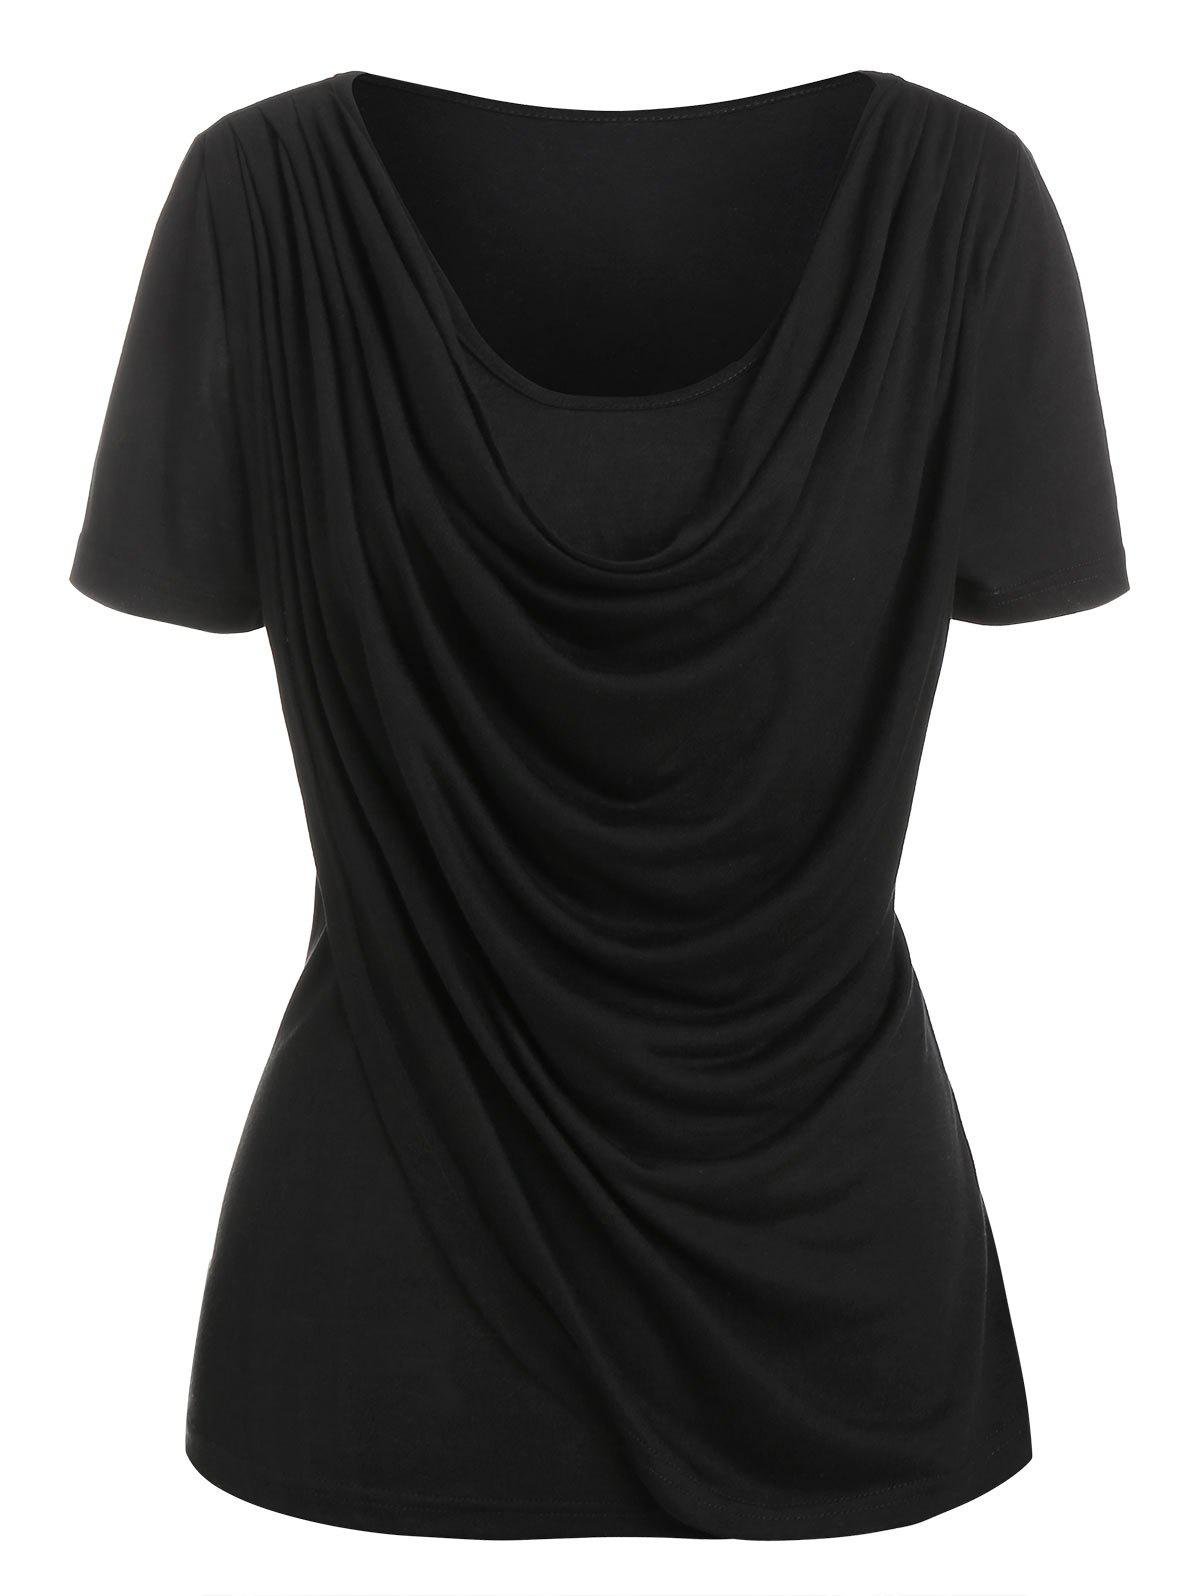 Affordable Cowl Neck Overlap Heathered T Shirt